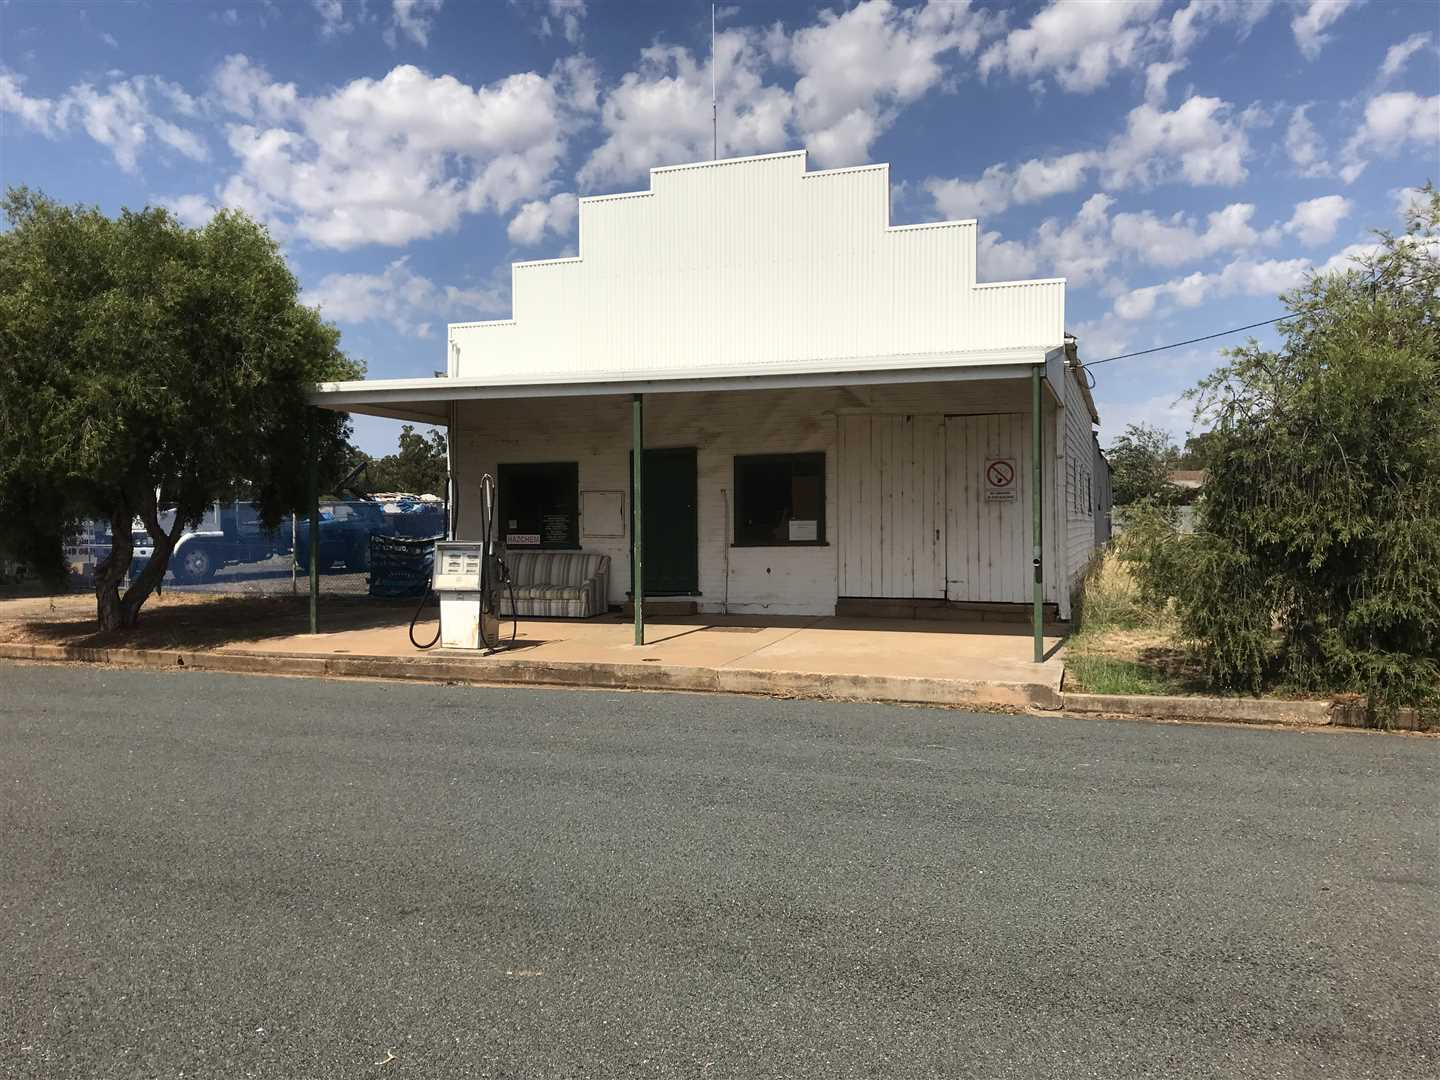 Under OFFER. Rand Storage/Commercial Opportunity